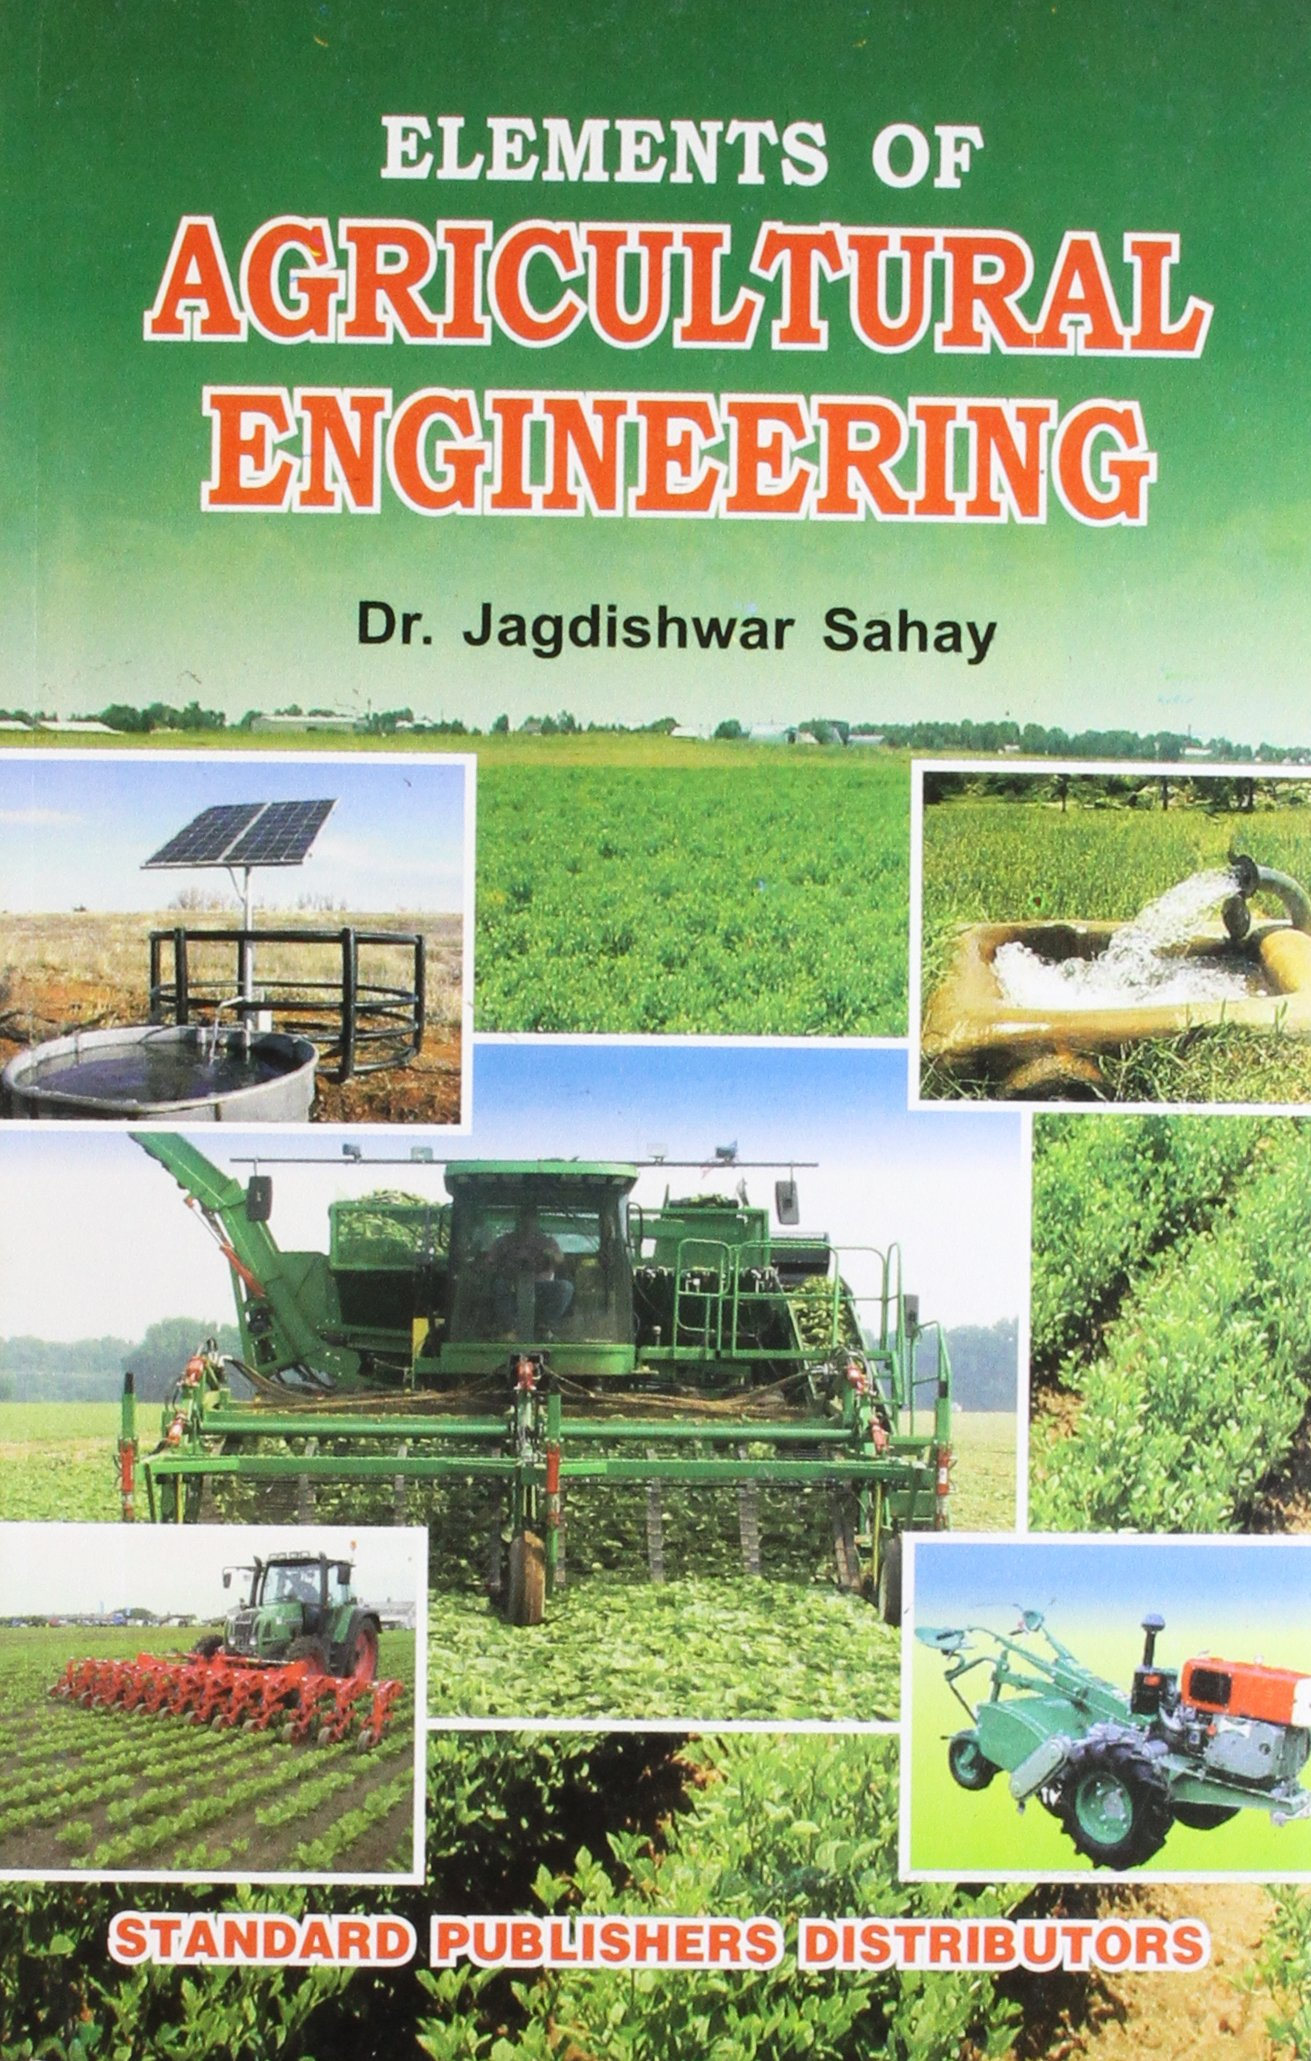 textbook elements of agric engineering